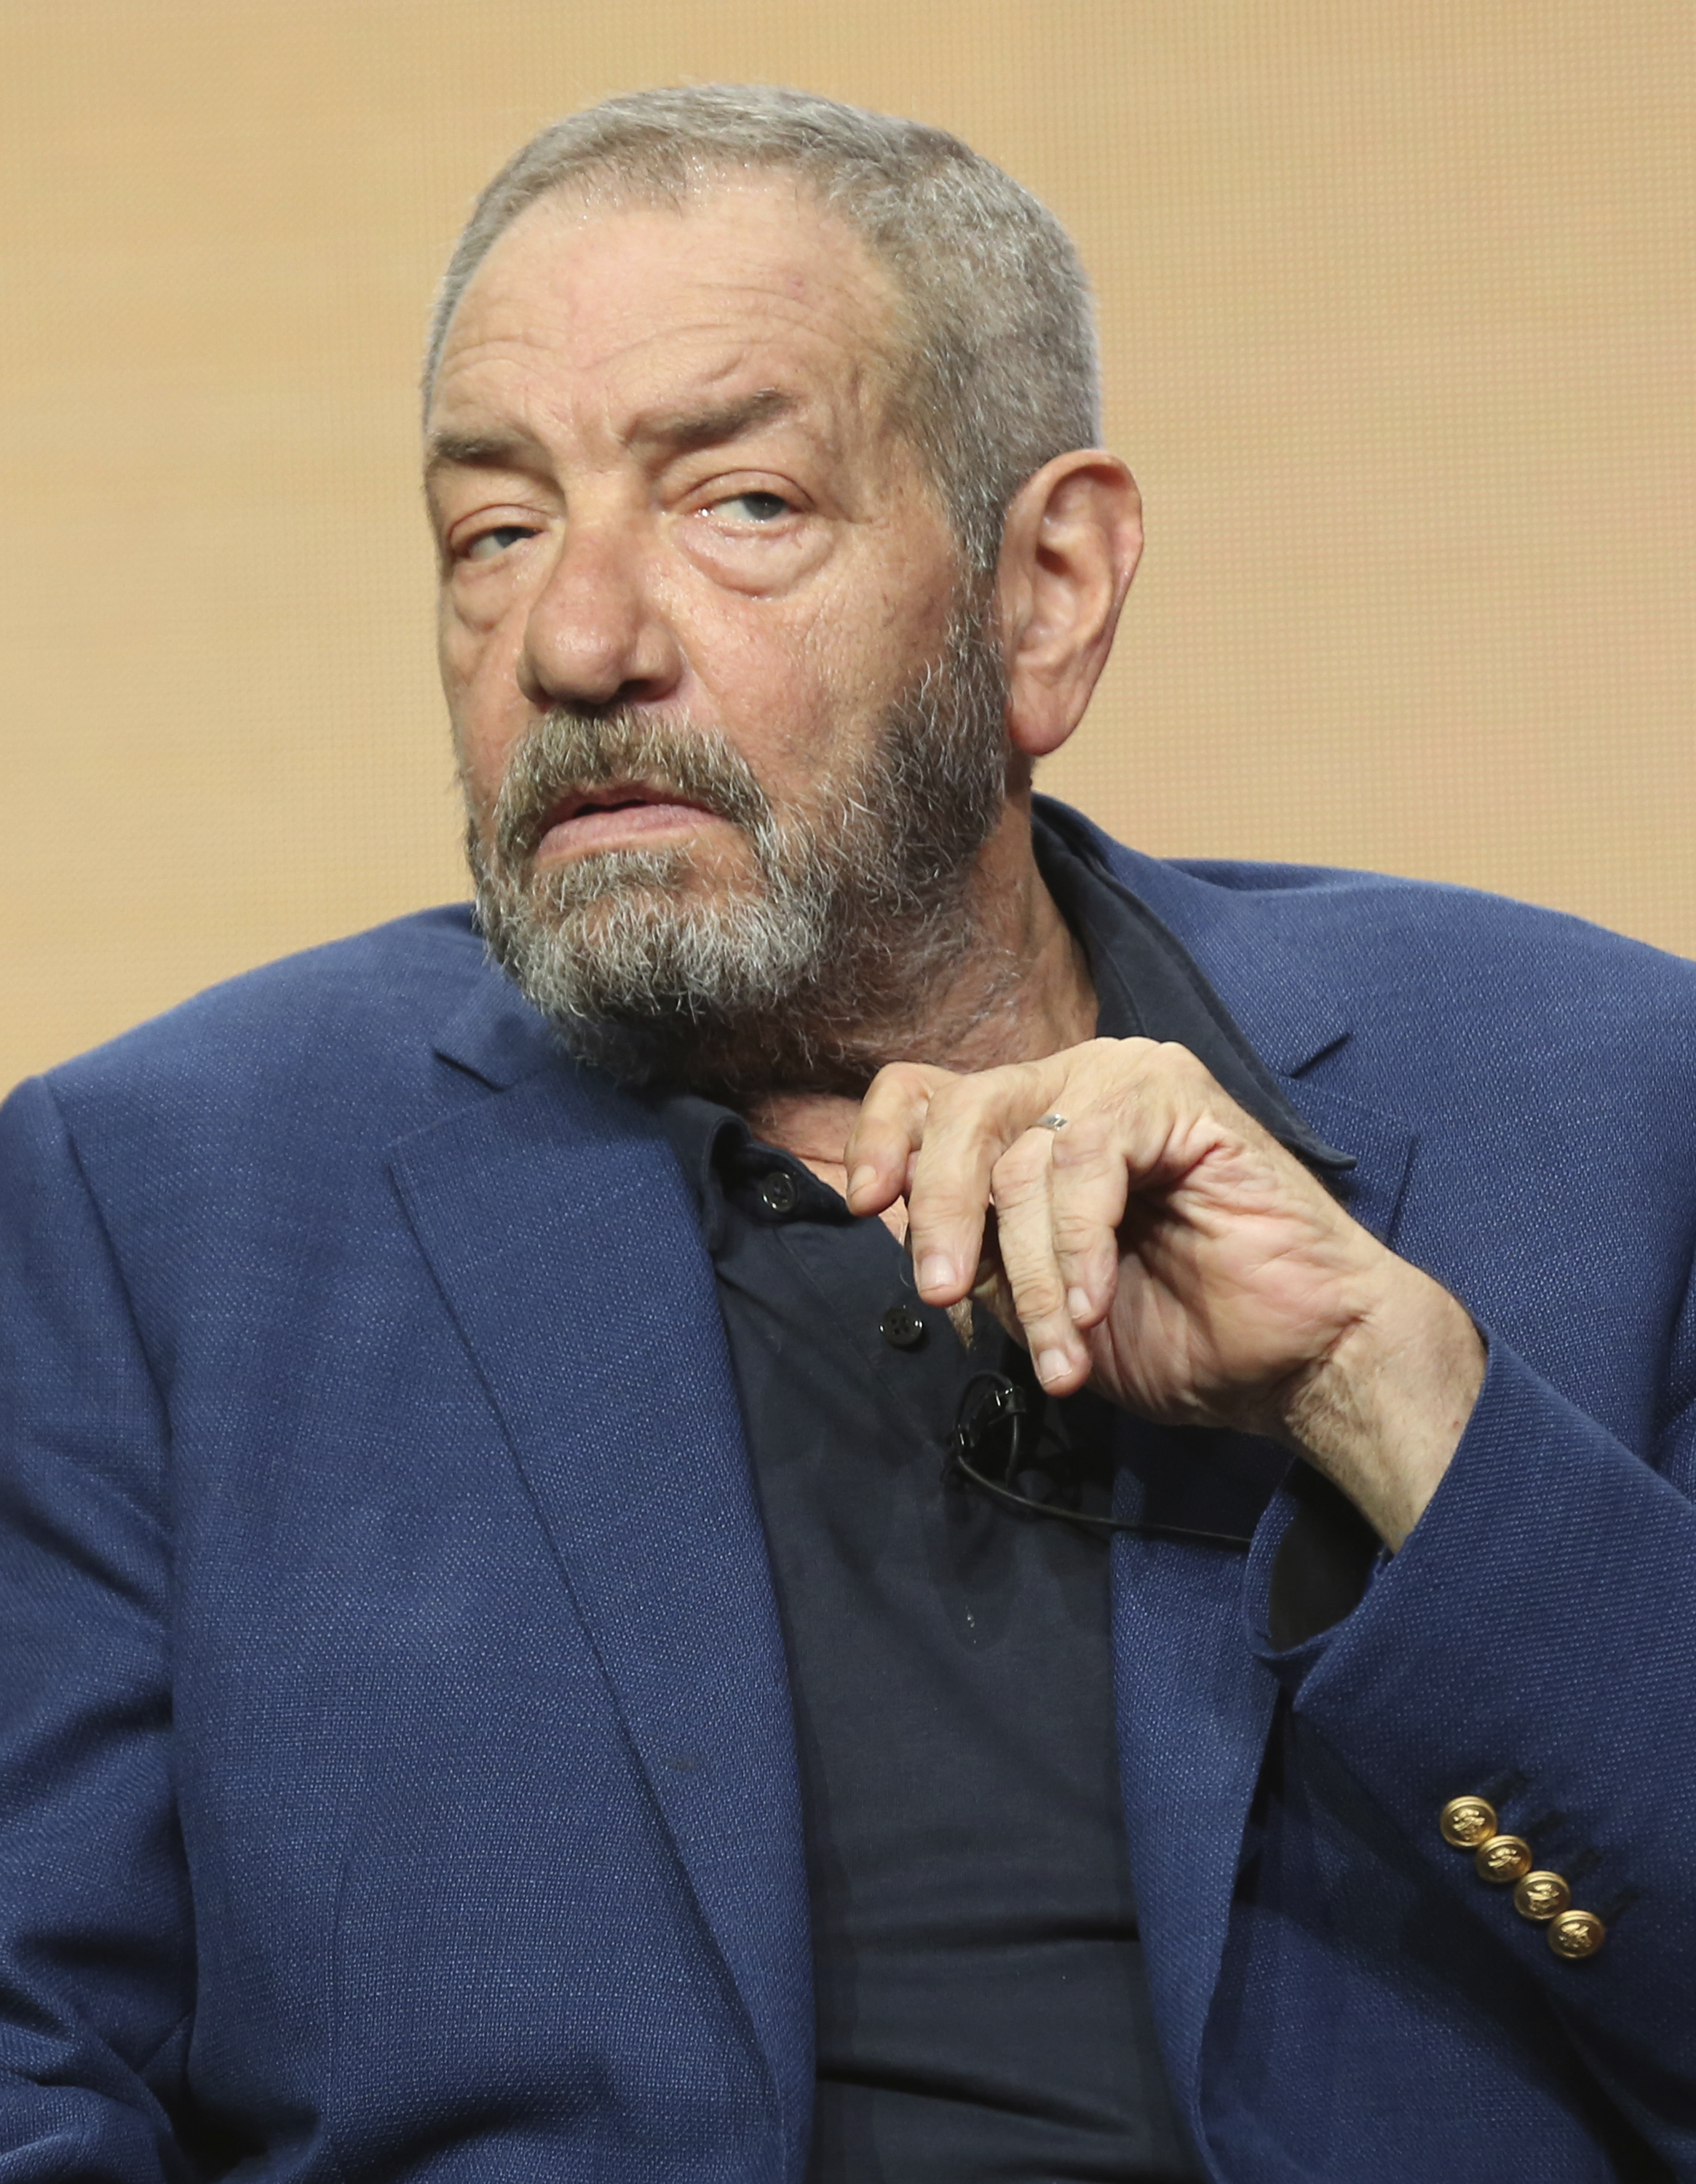 Creator/executive producer Dick Wolf participates in the 'Law & Order' panel during the NBC Television Critics Association Summer Press Tour on Aug. 3, 2017, in Beverly Hills, Calif.